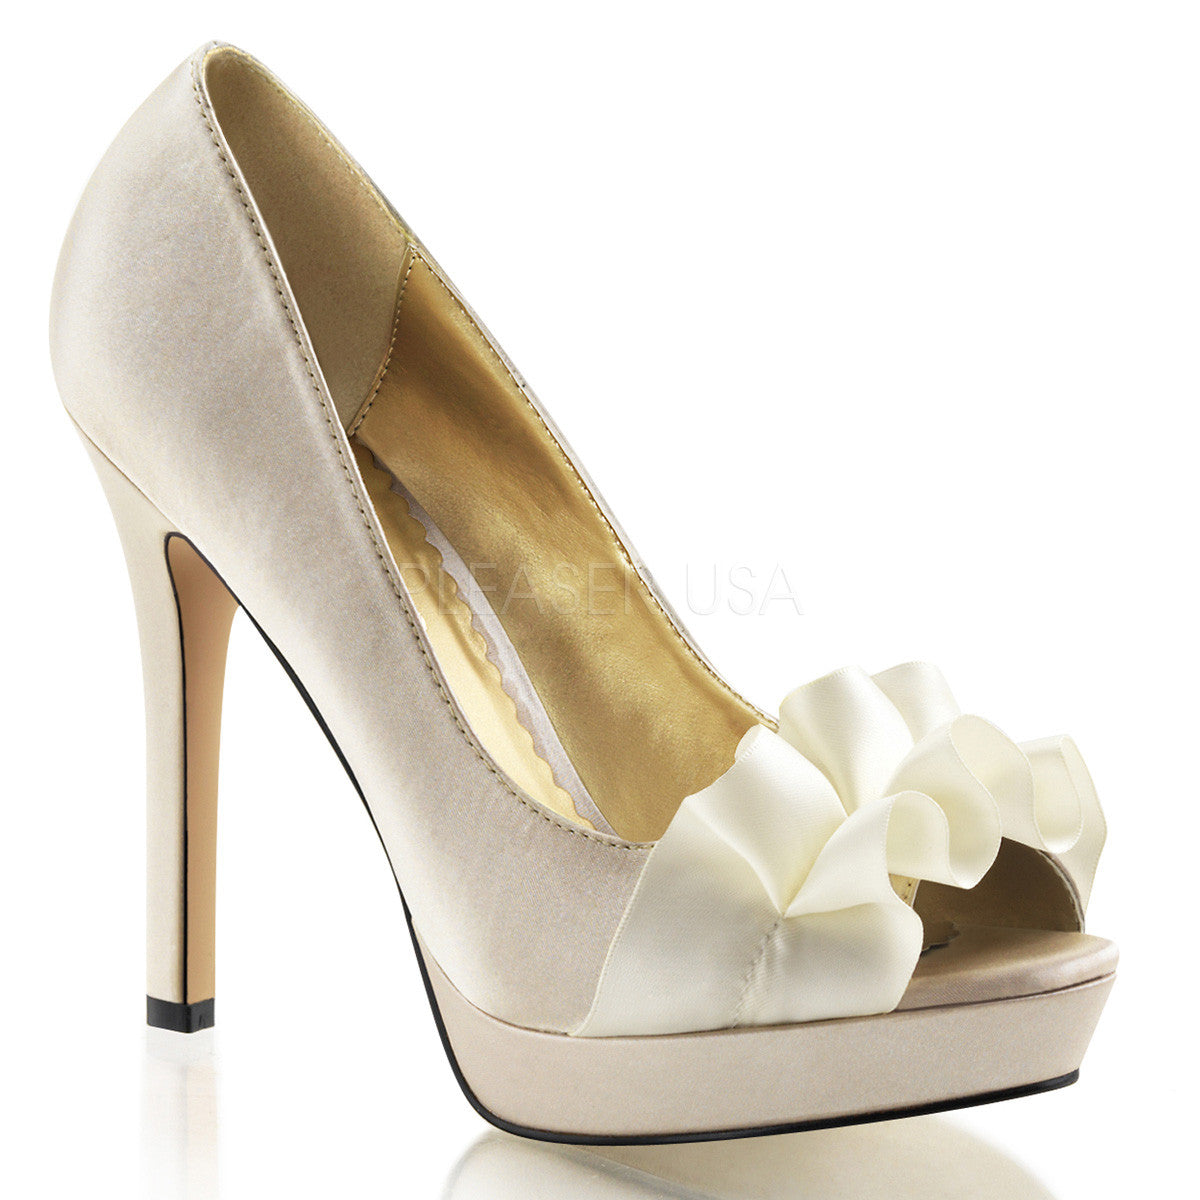 FABULICIOUS LUMINA-42 Champagne Satin Peep Toe Pumps - Shoecup.com